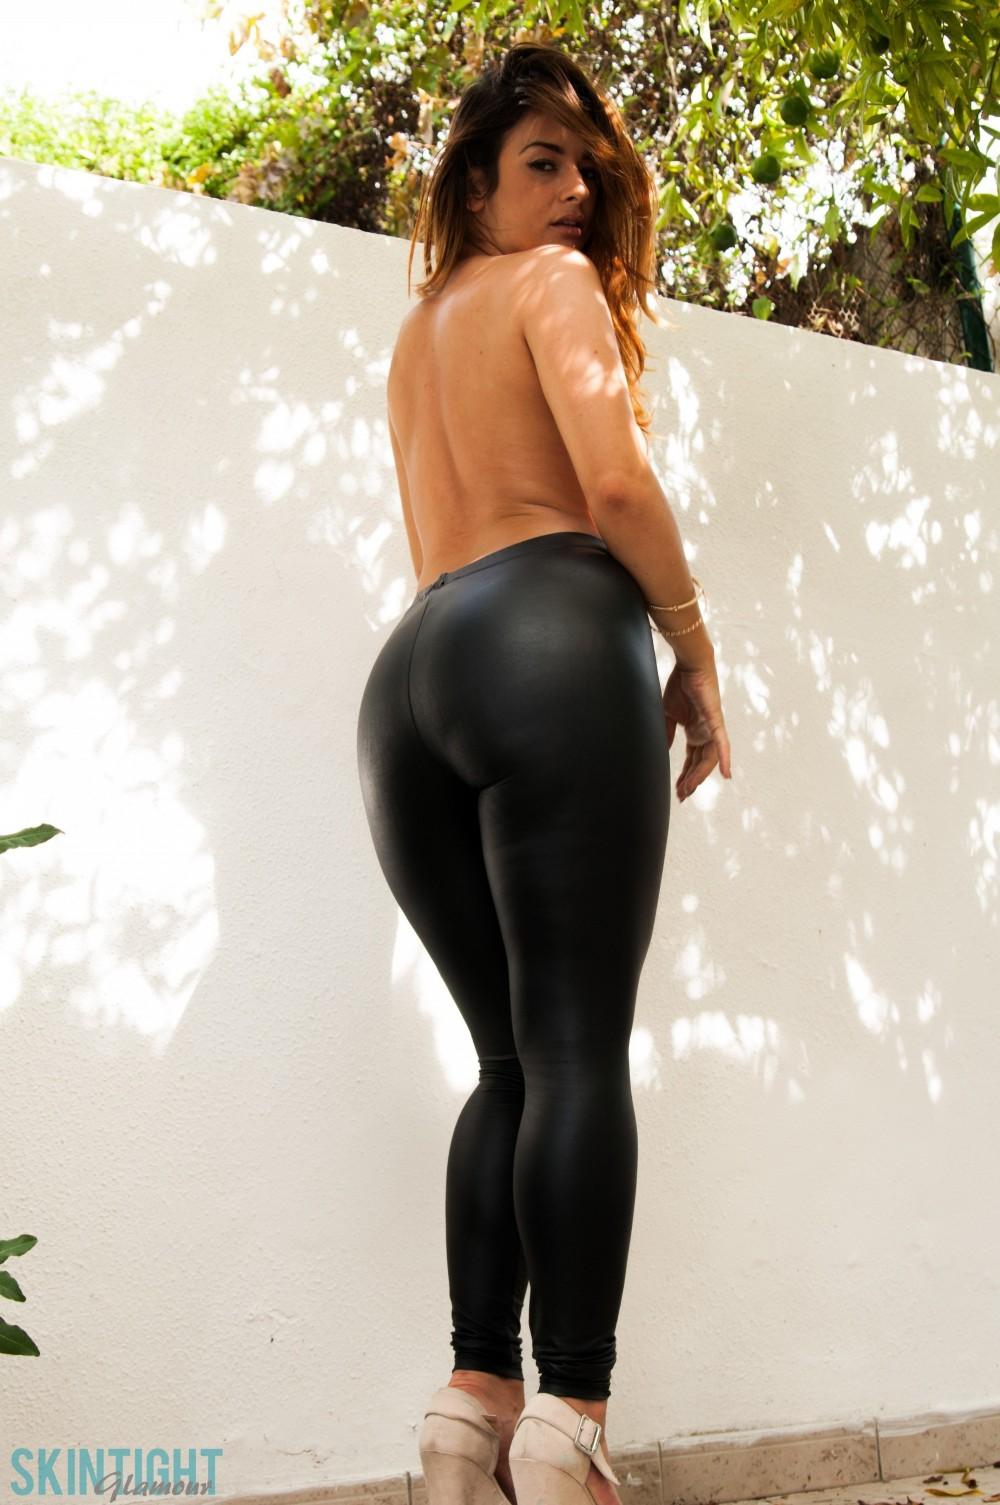 Find skin tight from a vast selection of Leggings for Women. Get great deals on eBay!